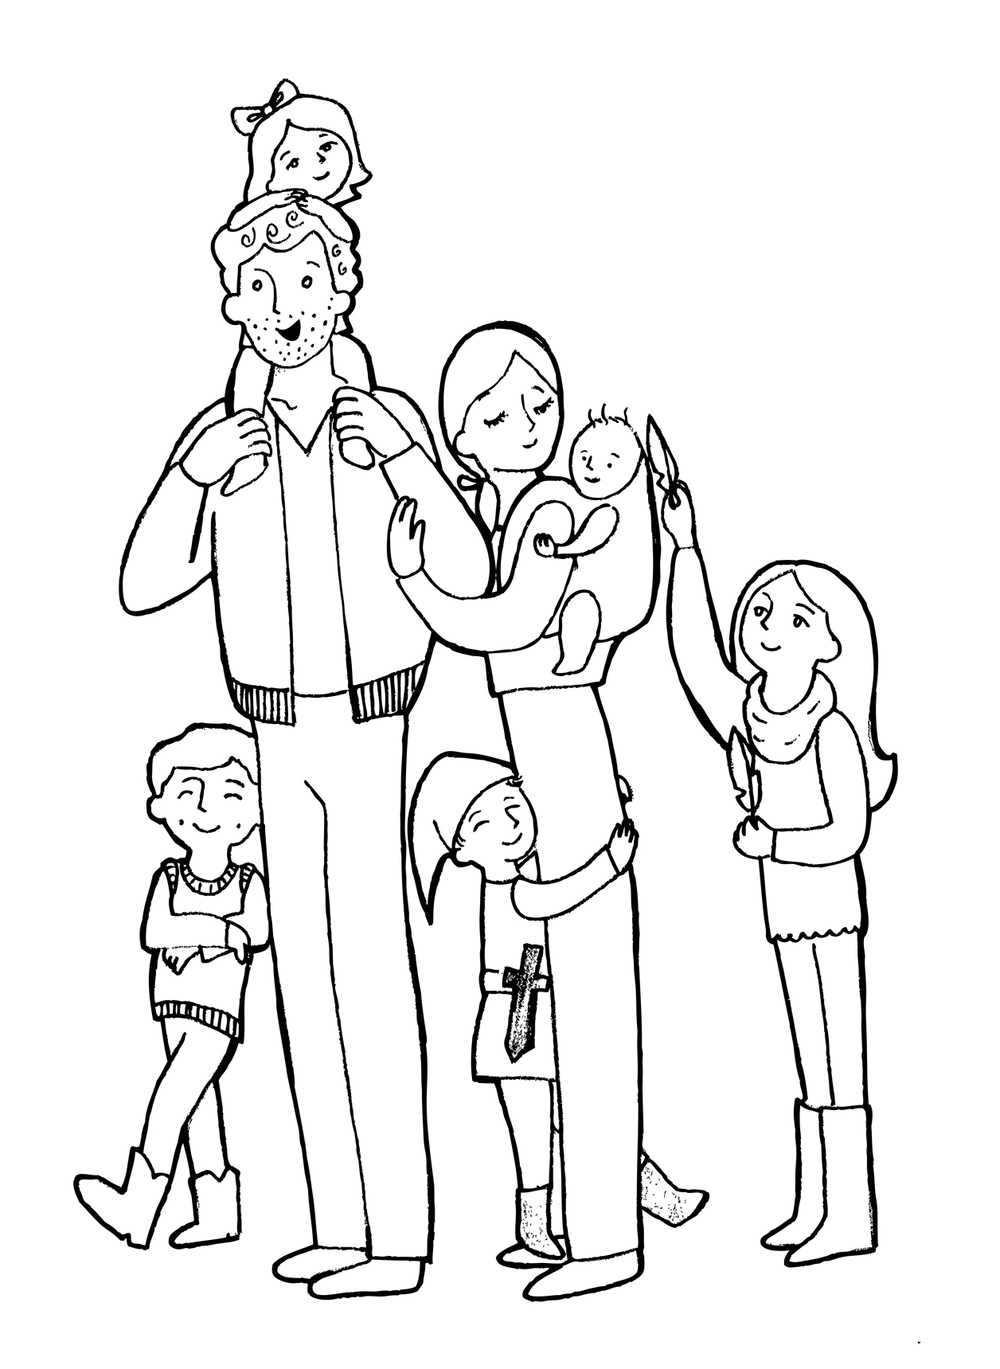 Family-Portraitweb.jpg